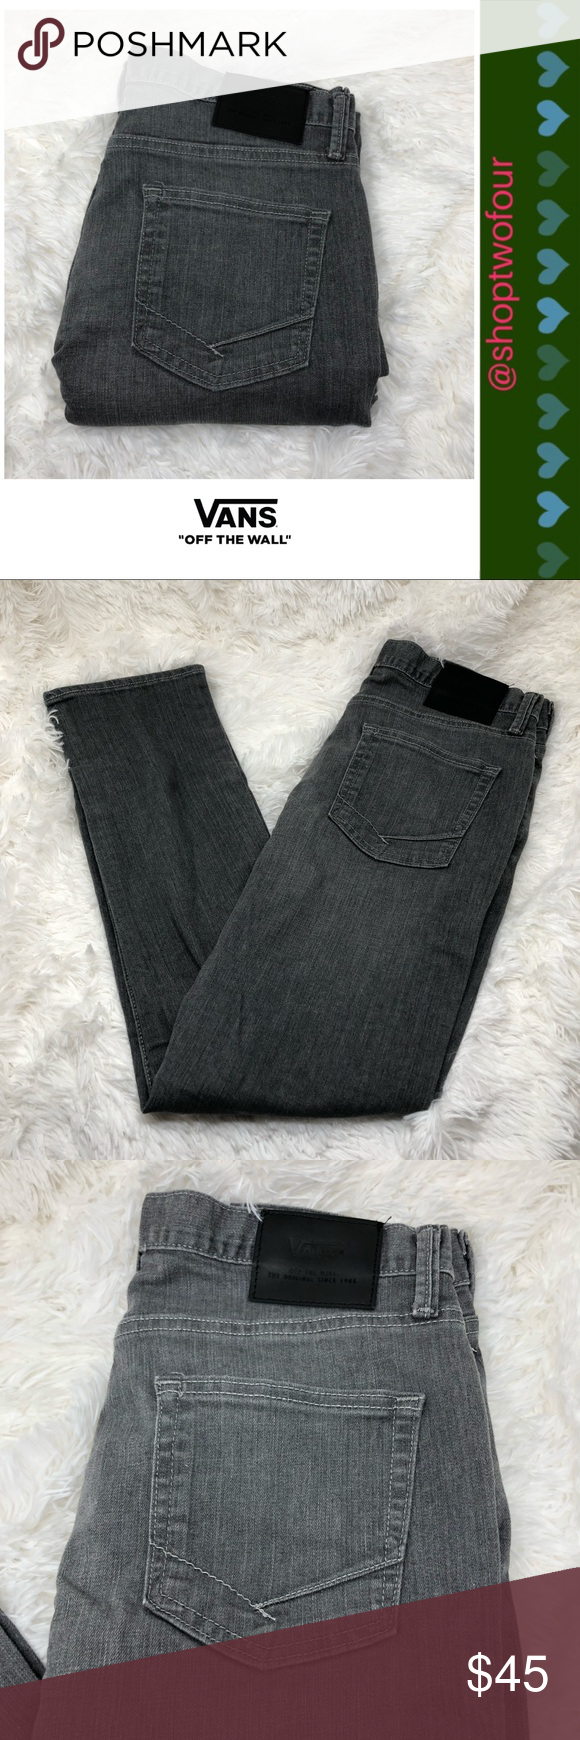 104d153ba9 Vans Off the Wall V76 skinny jeans Worn gray Vans Off the Wall Men s skinny  denim jeans Color- worn gray Size - 32 x 30 Inseam - 30 inches 93% cotton  6% ...